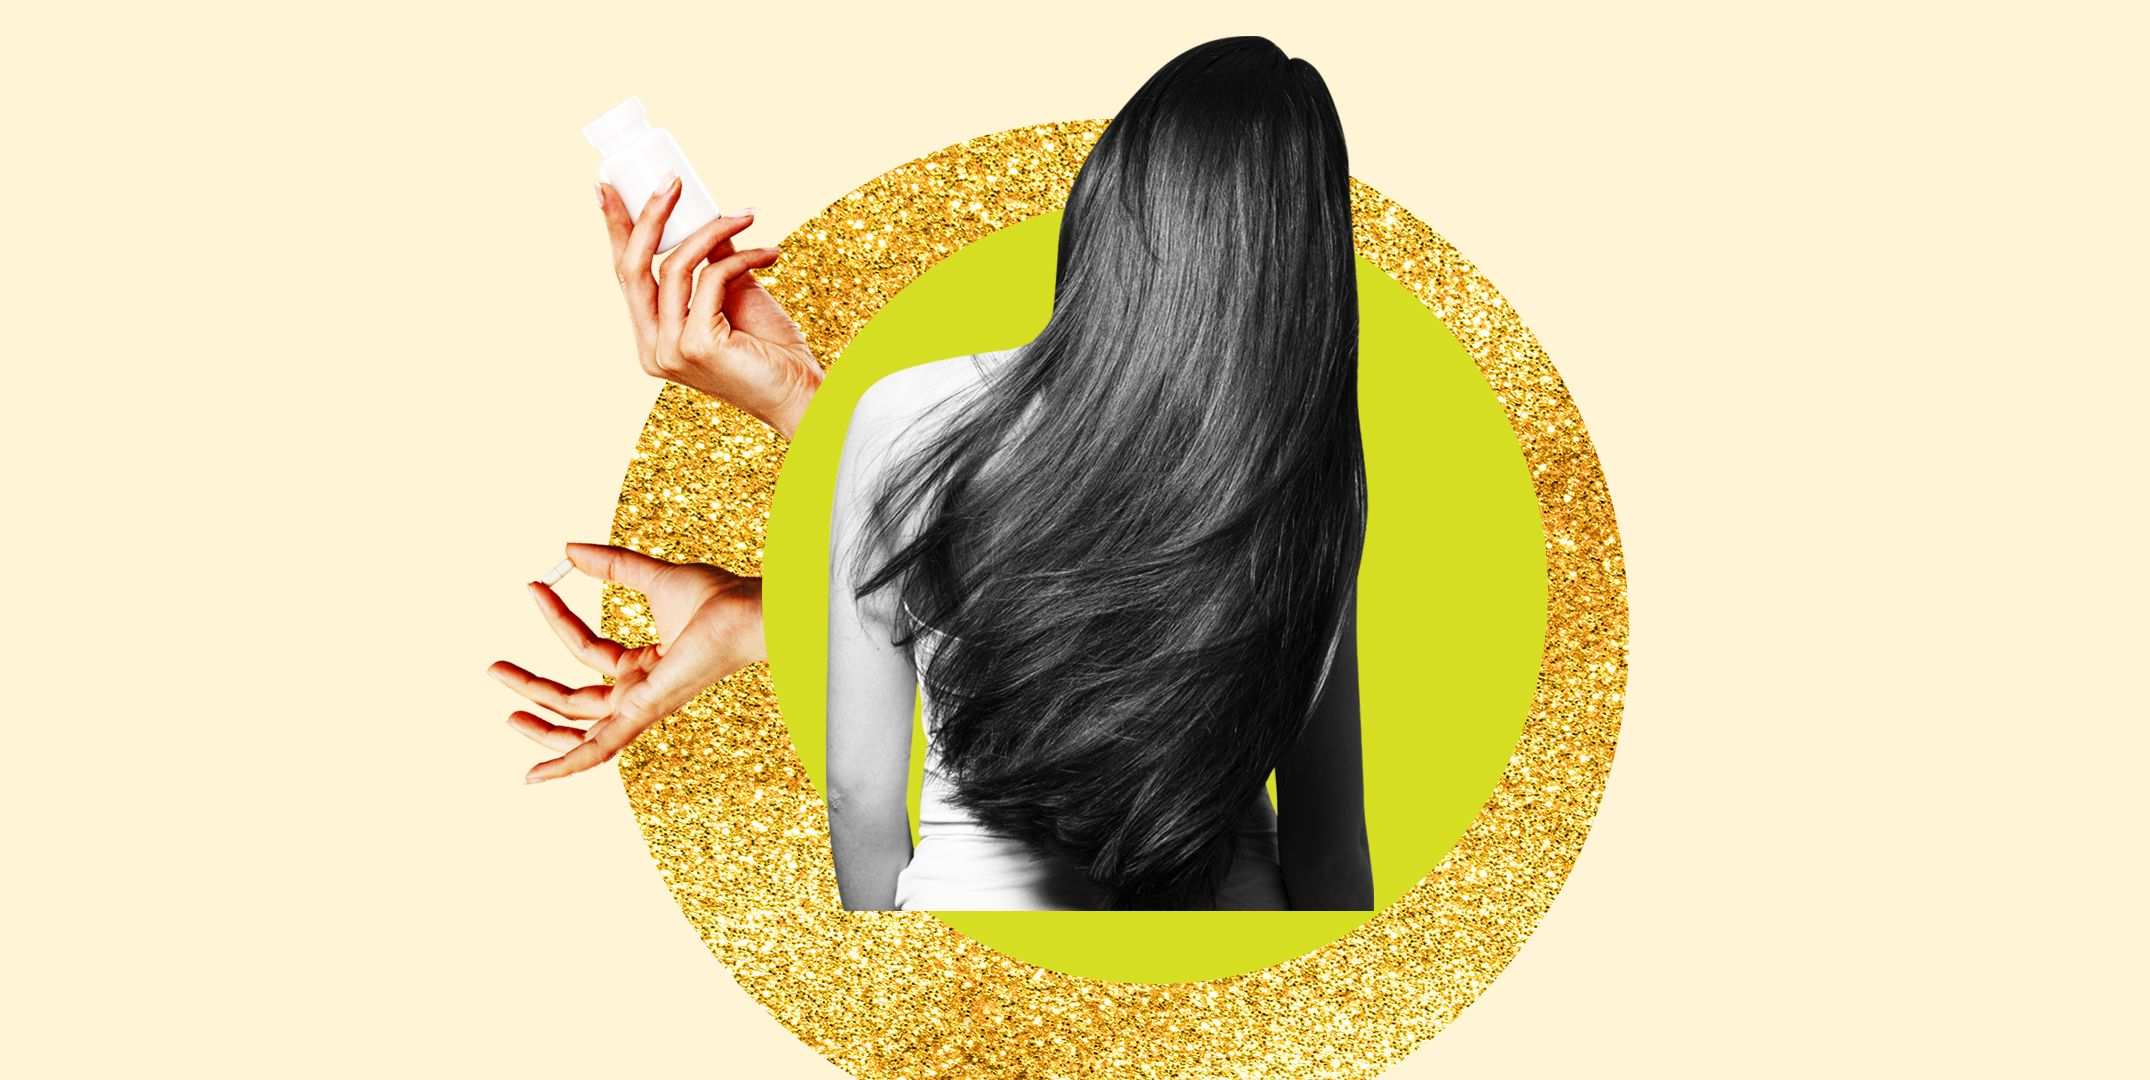 Do Hair Growth Supplements Really Work? The Best Hair Vitamins, According to Dermatologists